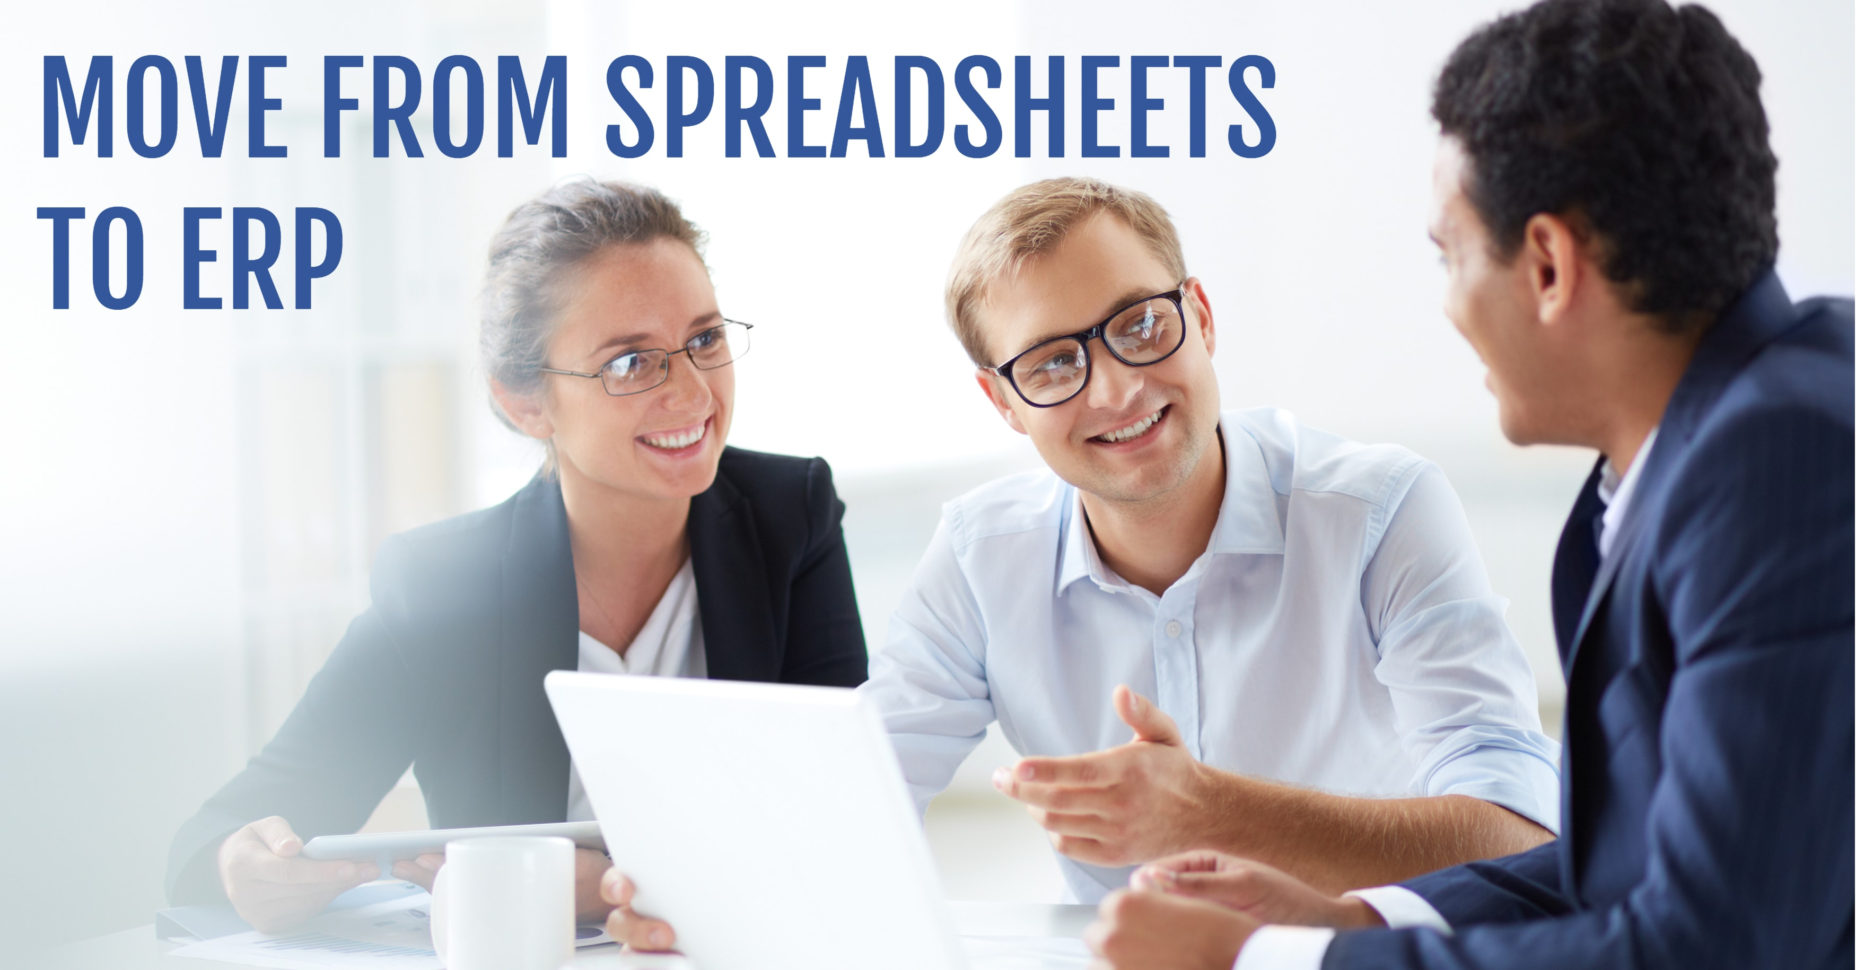 Erp Spreadsheet Intended For How To Move From Spreadsheets To Erp